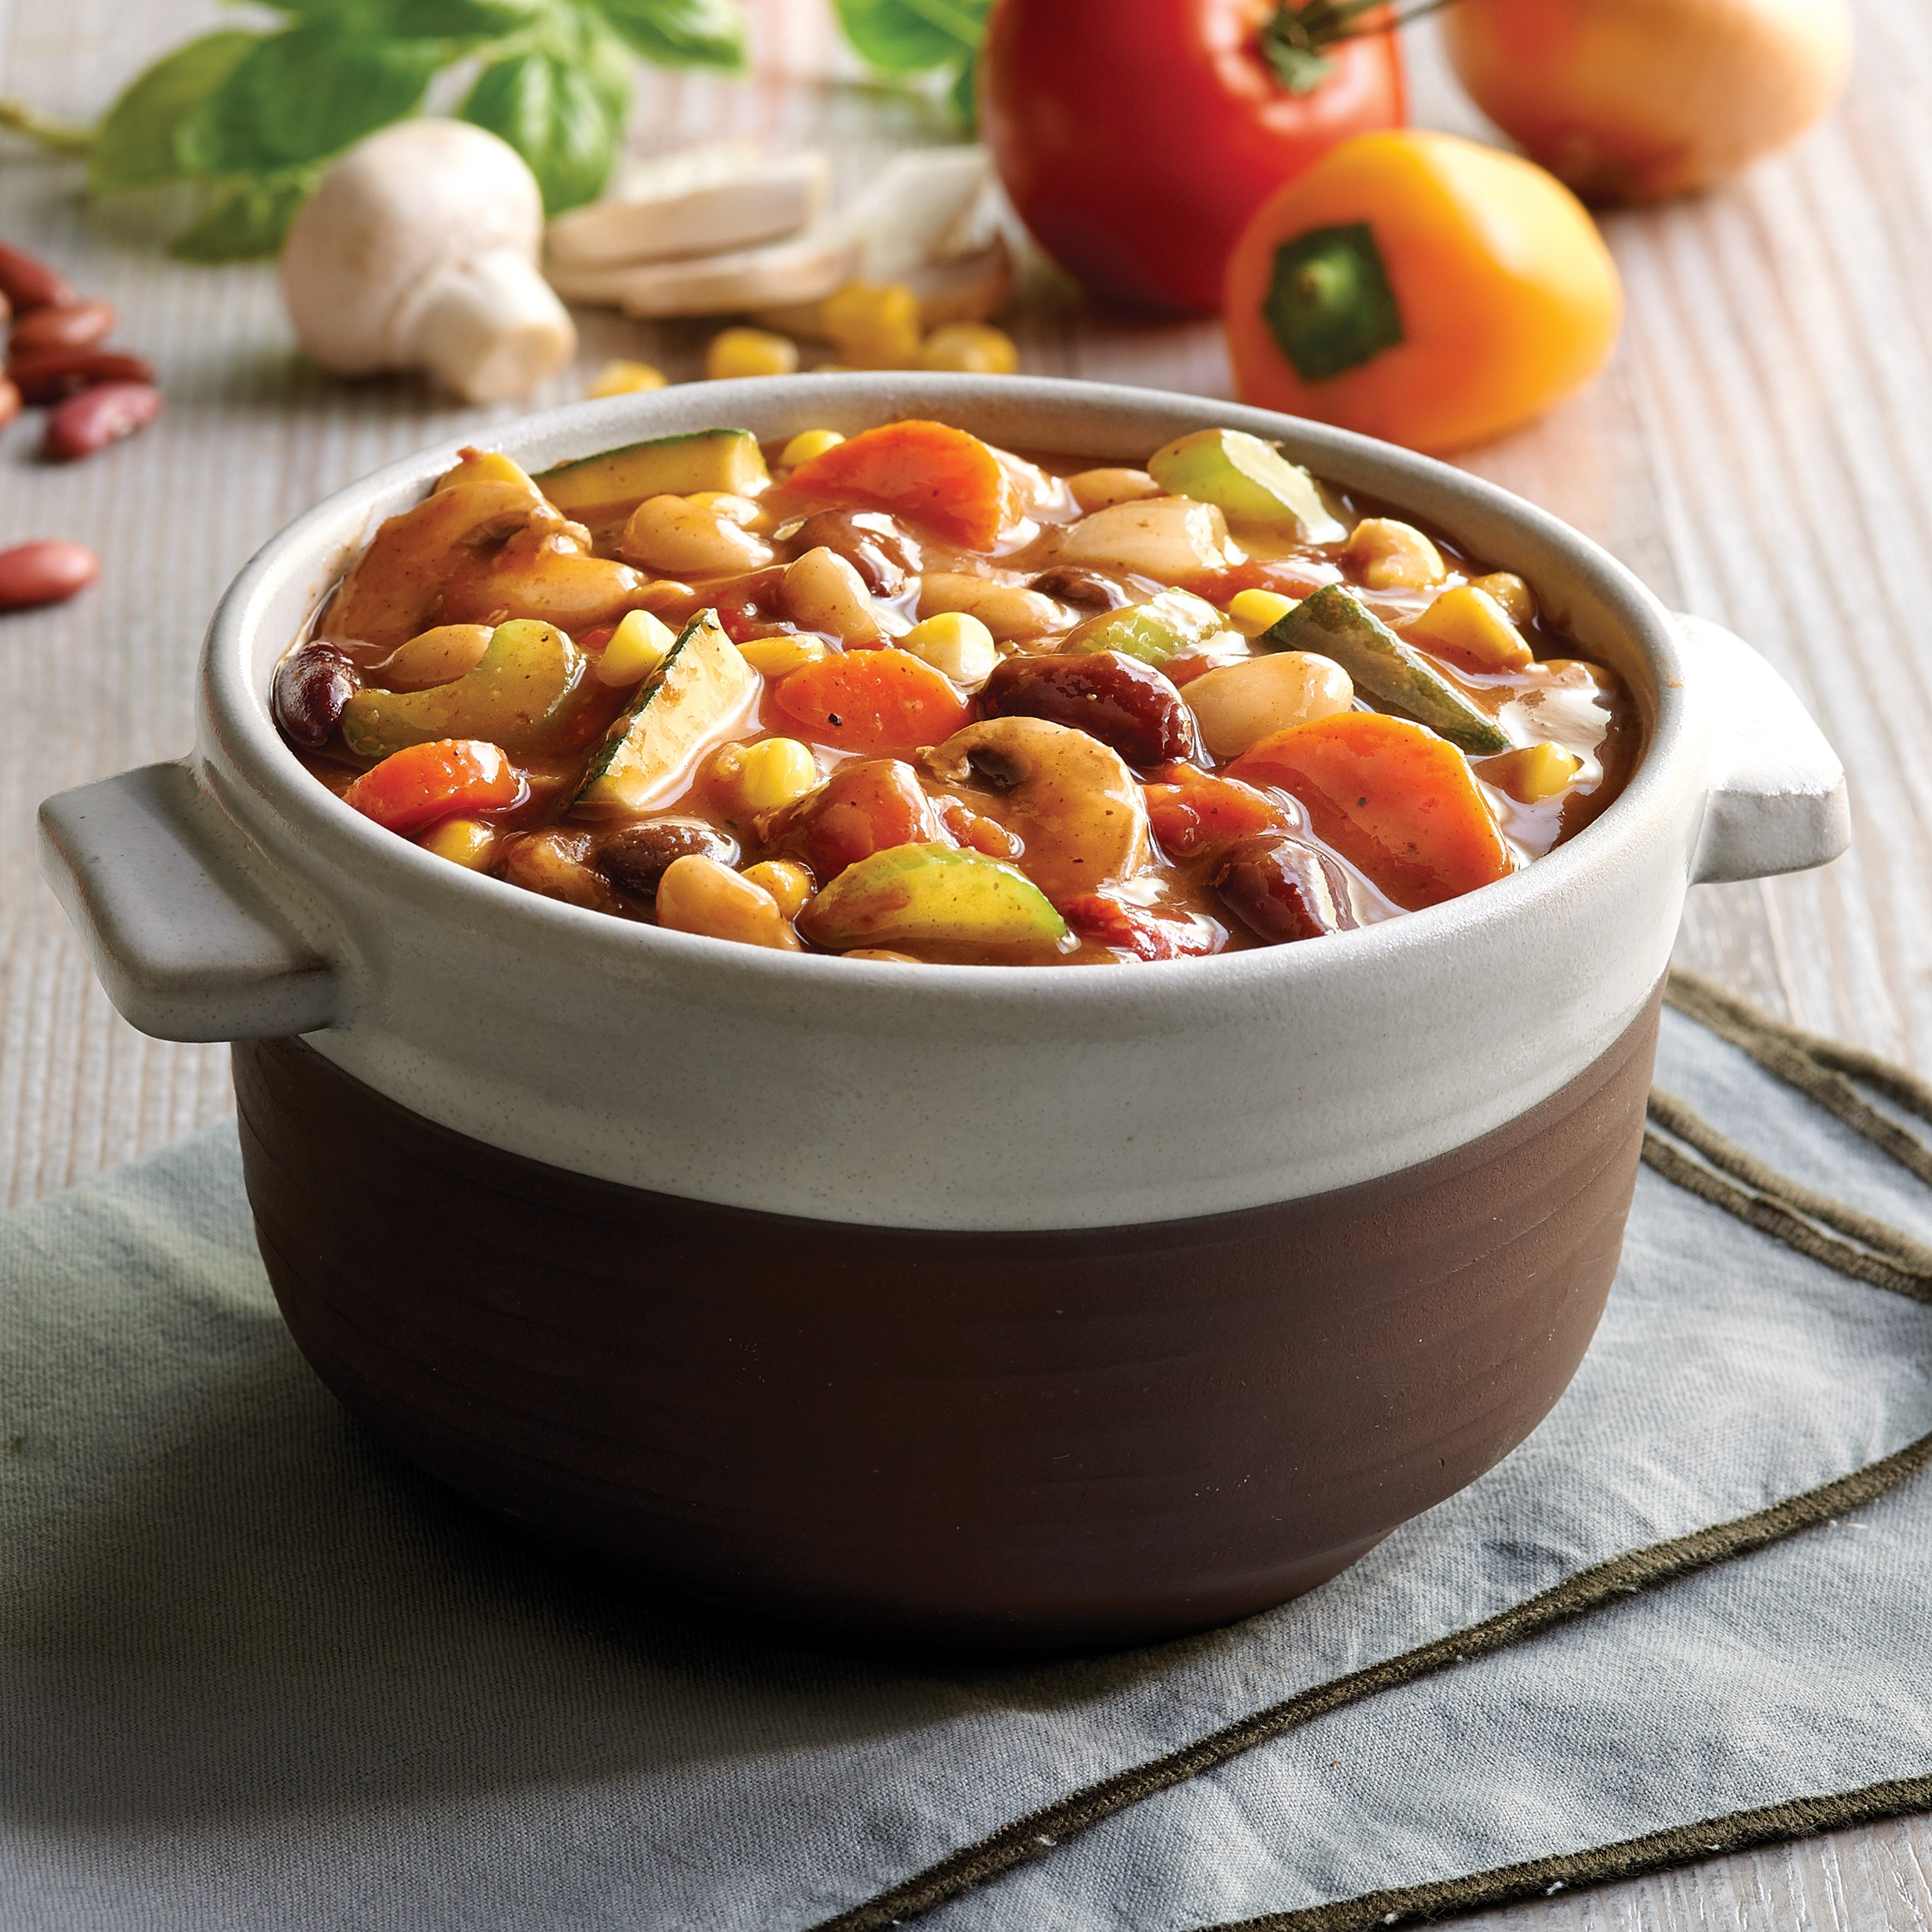 Bowl of foodservice Whitey's Frozen Chili Manufacturers Chipotle Garden Vegetable Chilii in a restaurant setting